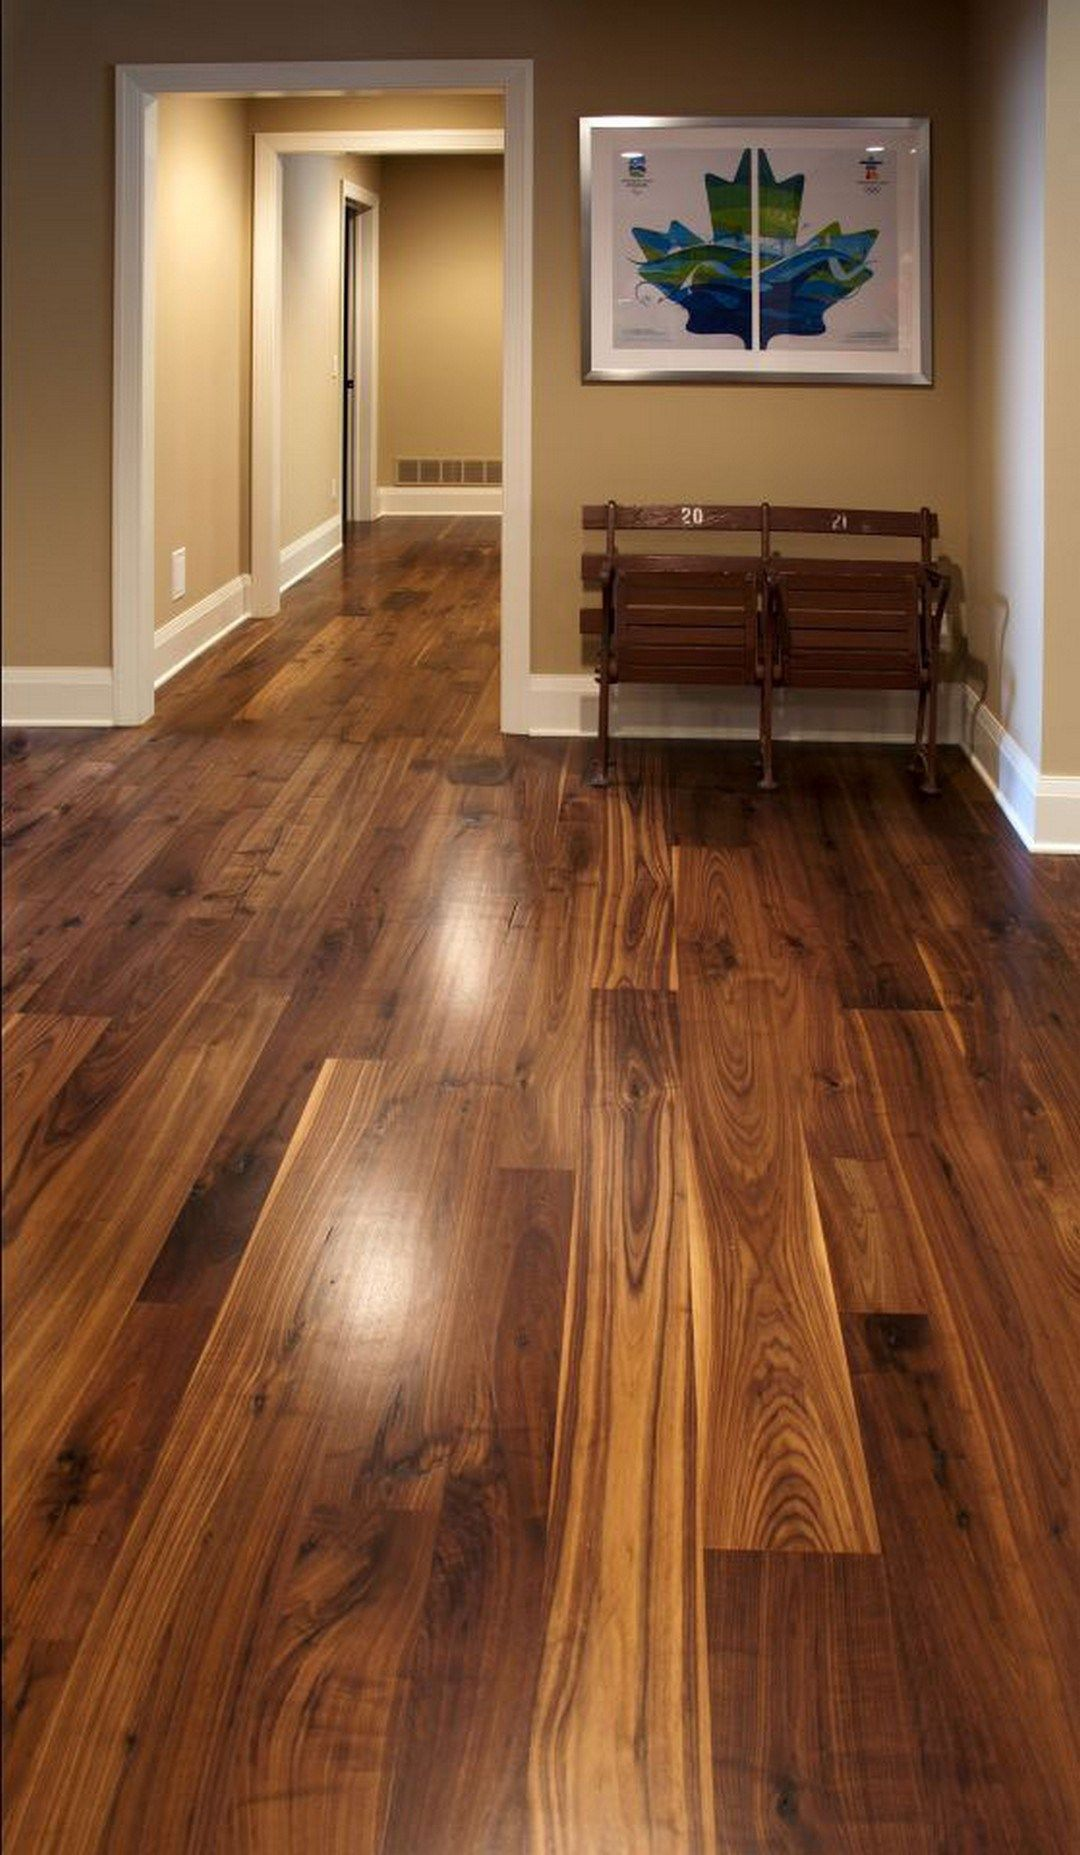 Laminate Hardwood Flooring For Enhancing Your Floor Ideas: 60 Perfect Color Wood Flooring Ideas